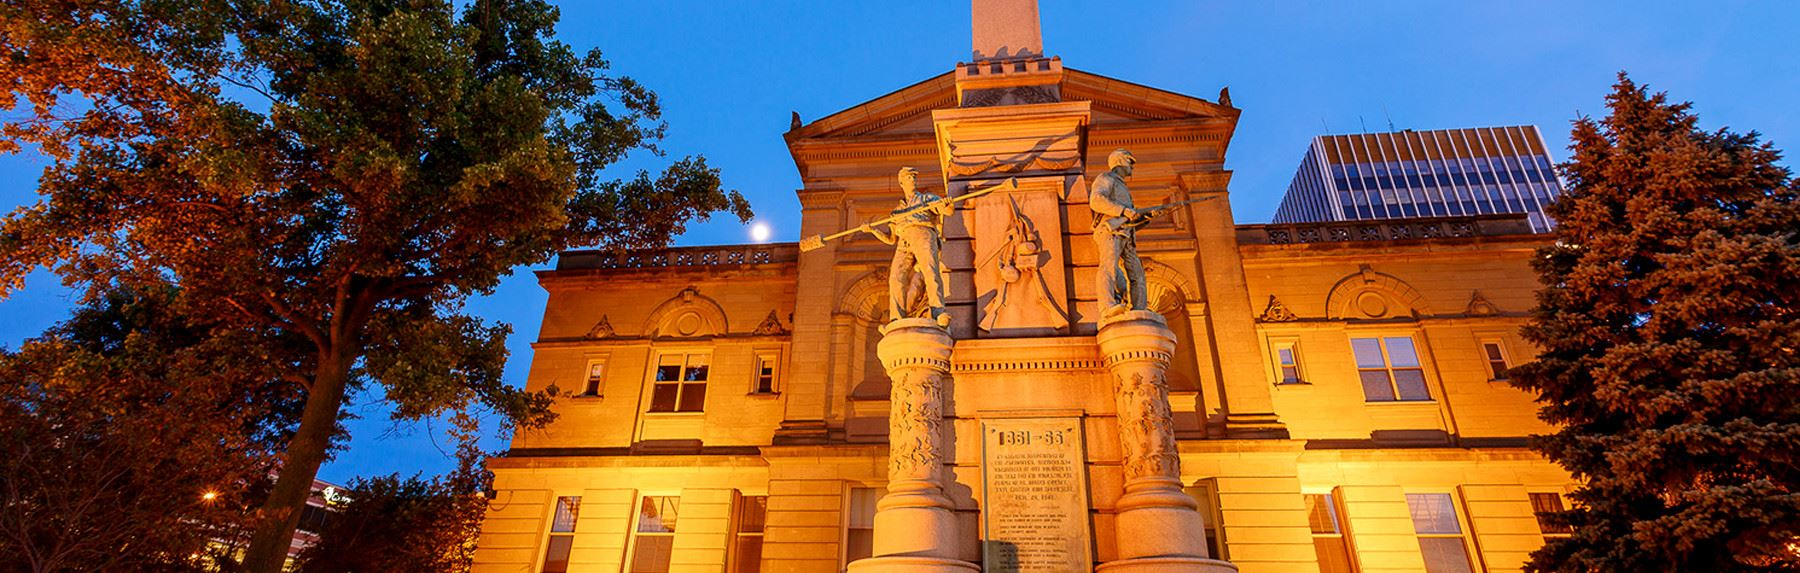 St. Joseph County Court House #1 and Civil War Memorial